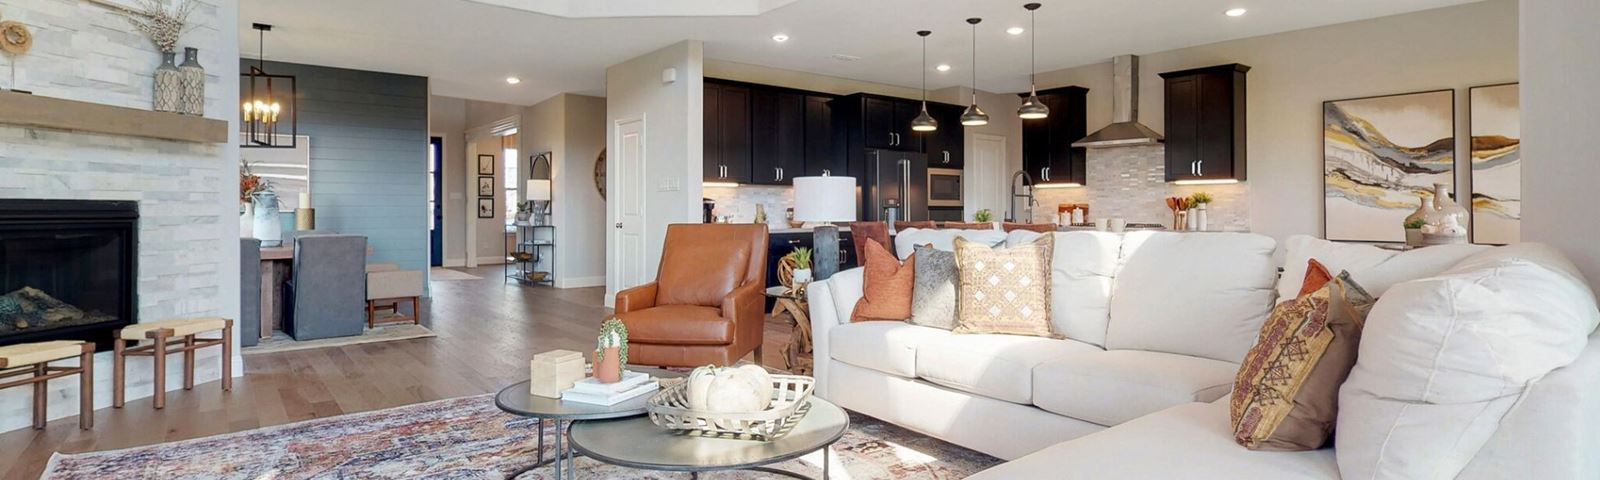 M/I Homes model family room at Hollyhock in Frisco, TX